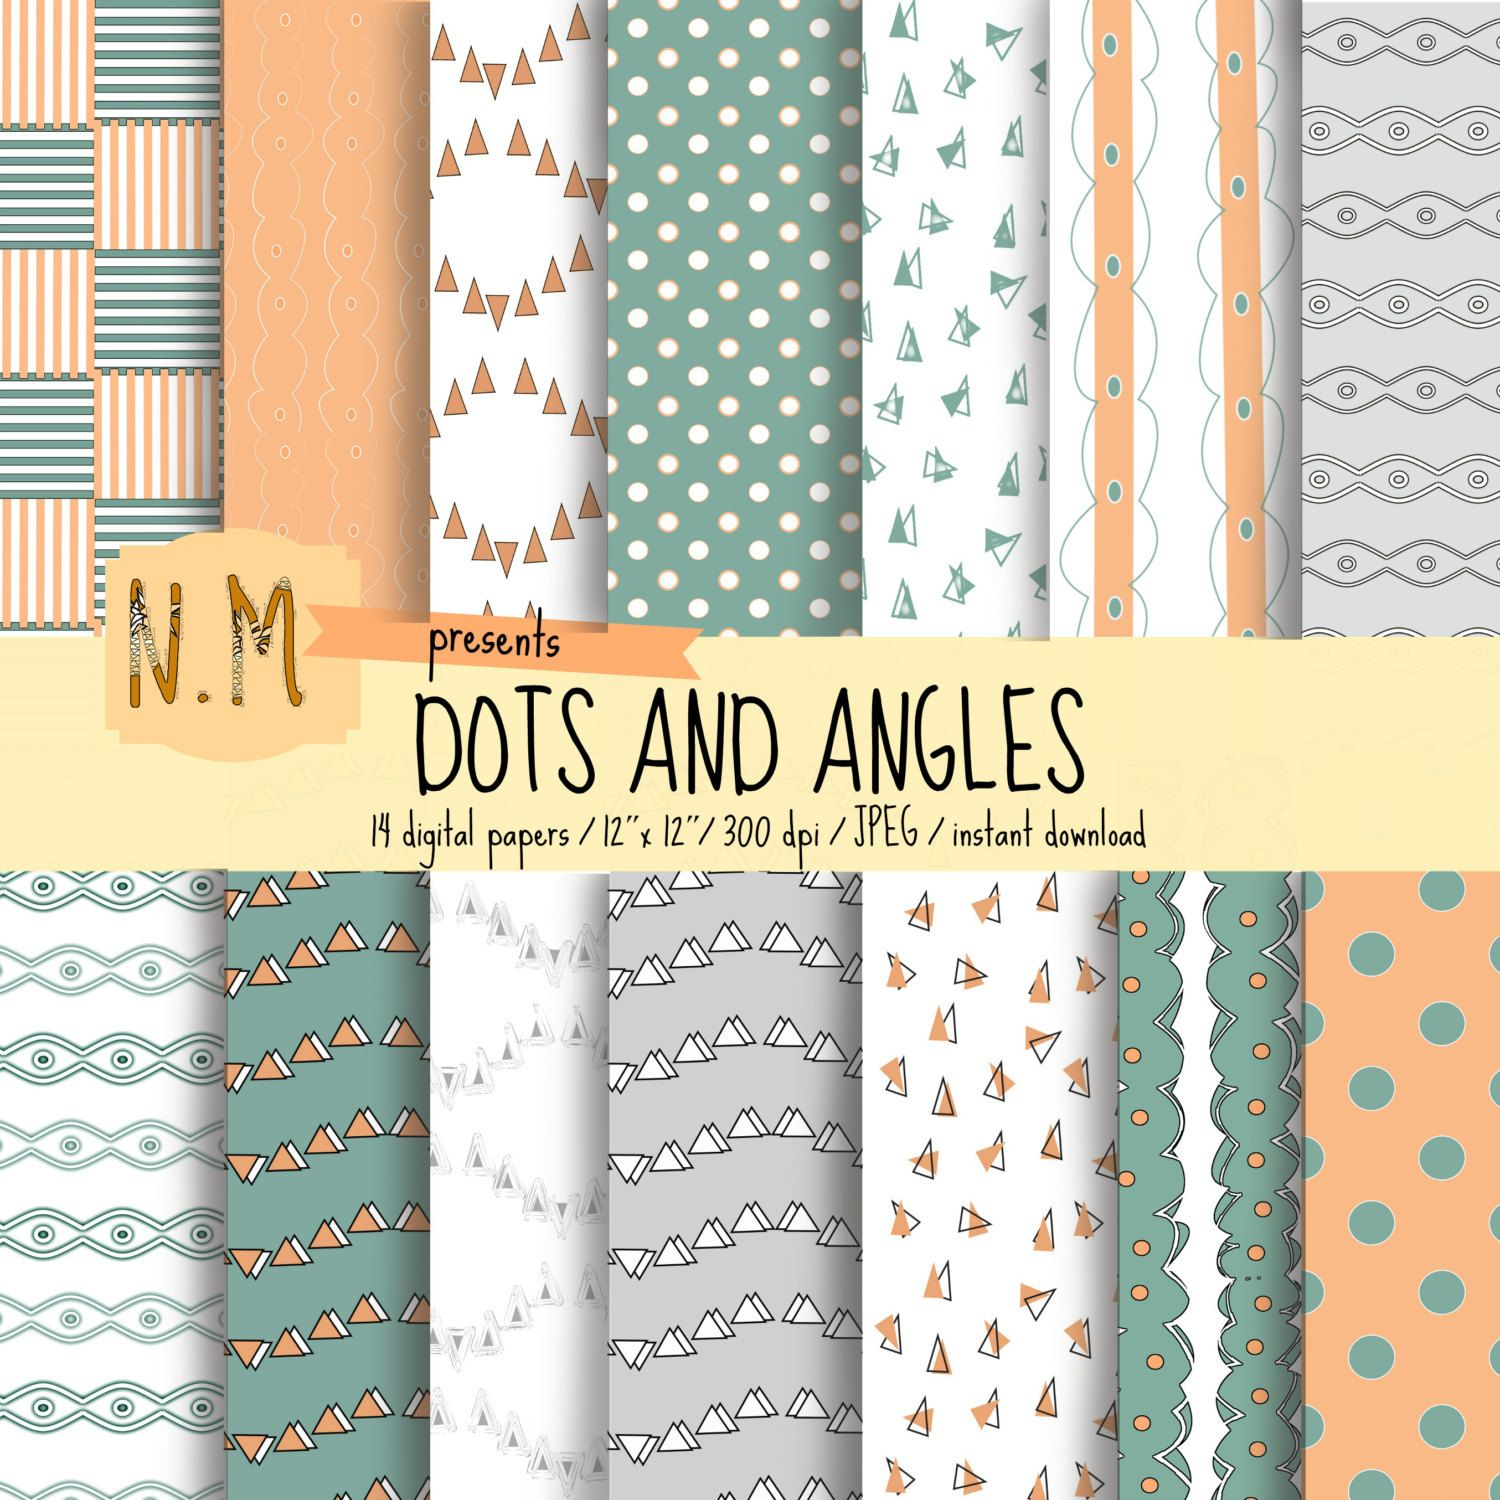 Geometric Digital Paper Pack Geometric Digital Printable Pattern With Peach White And Blue Dots Stripes A Printable Patterns Digital Paper Digital Paper Pack